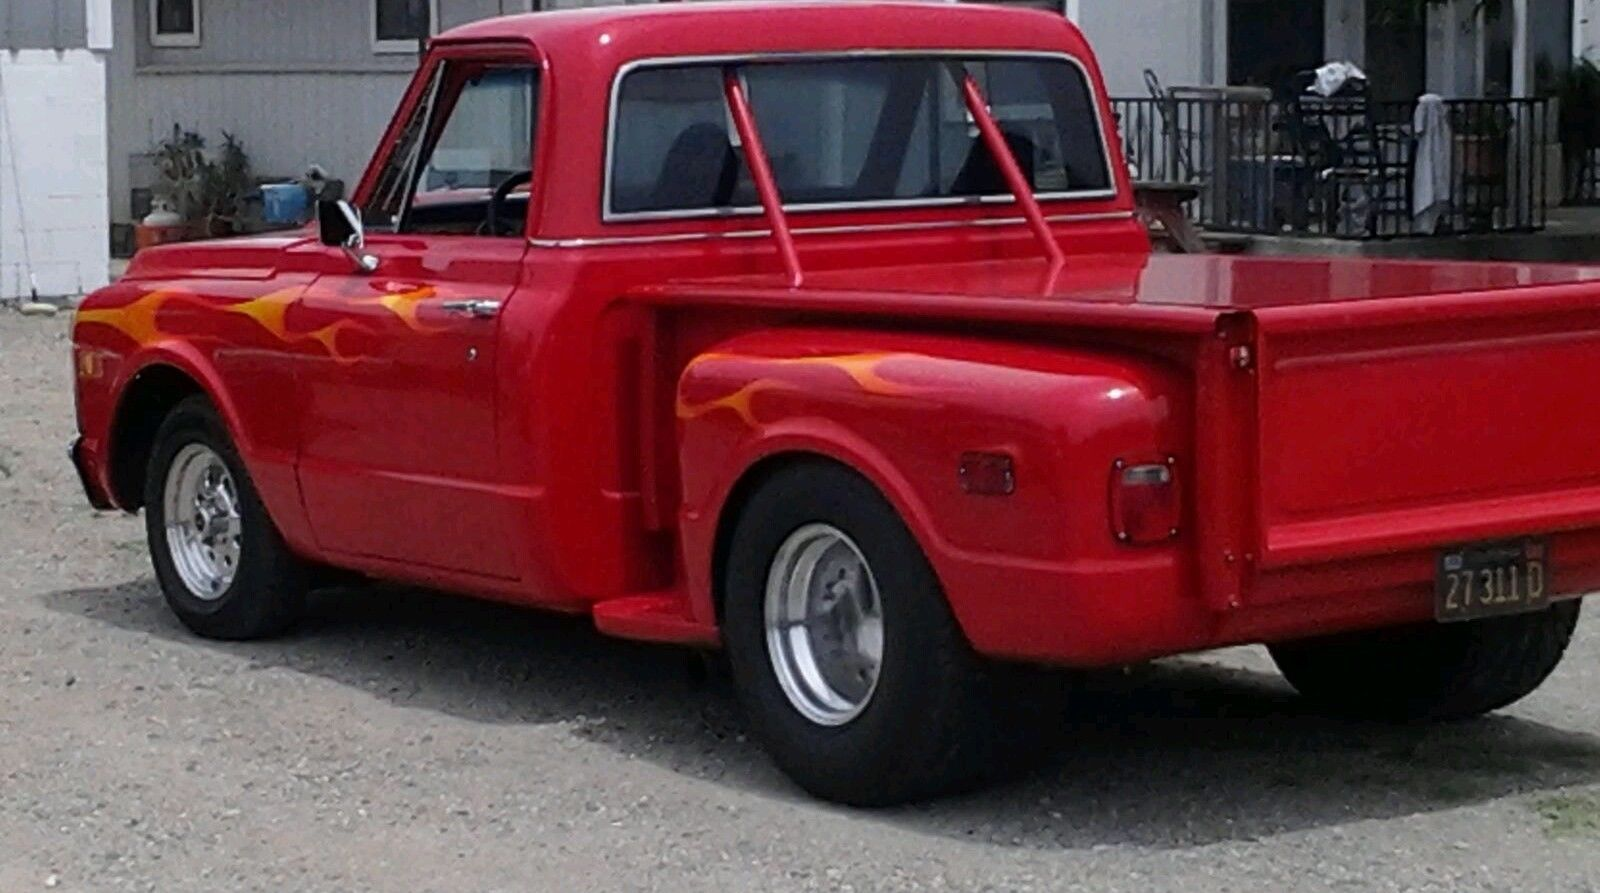 1969 Chevy Truck For Sale >> 1969 Step Side Chevrolet Pro Street Truck Big Block Stroked